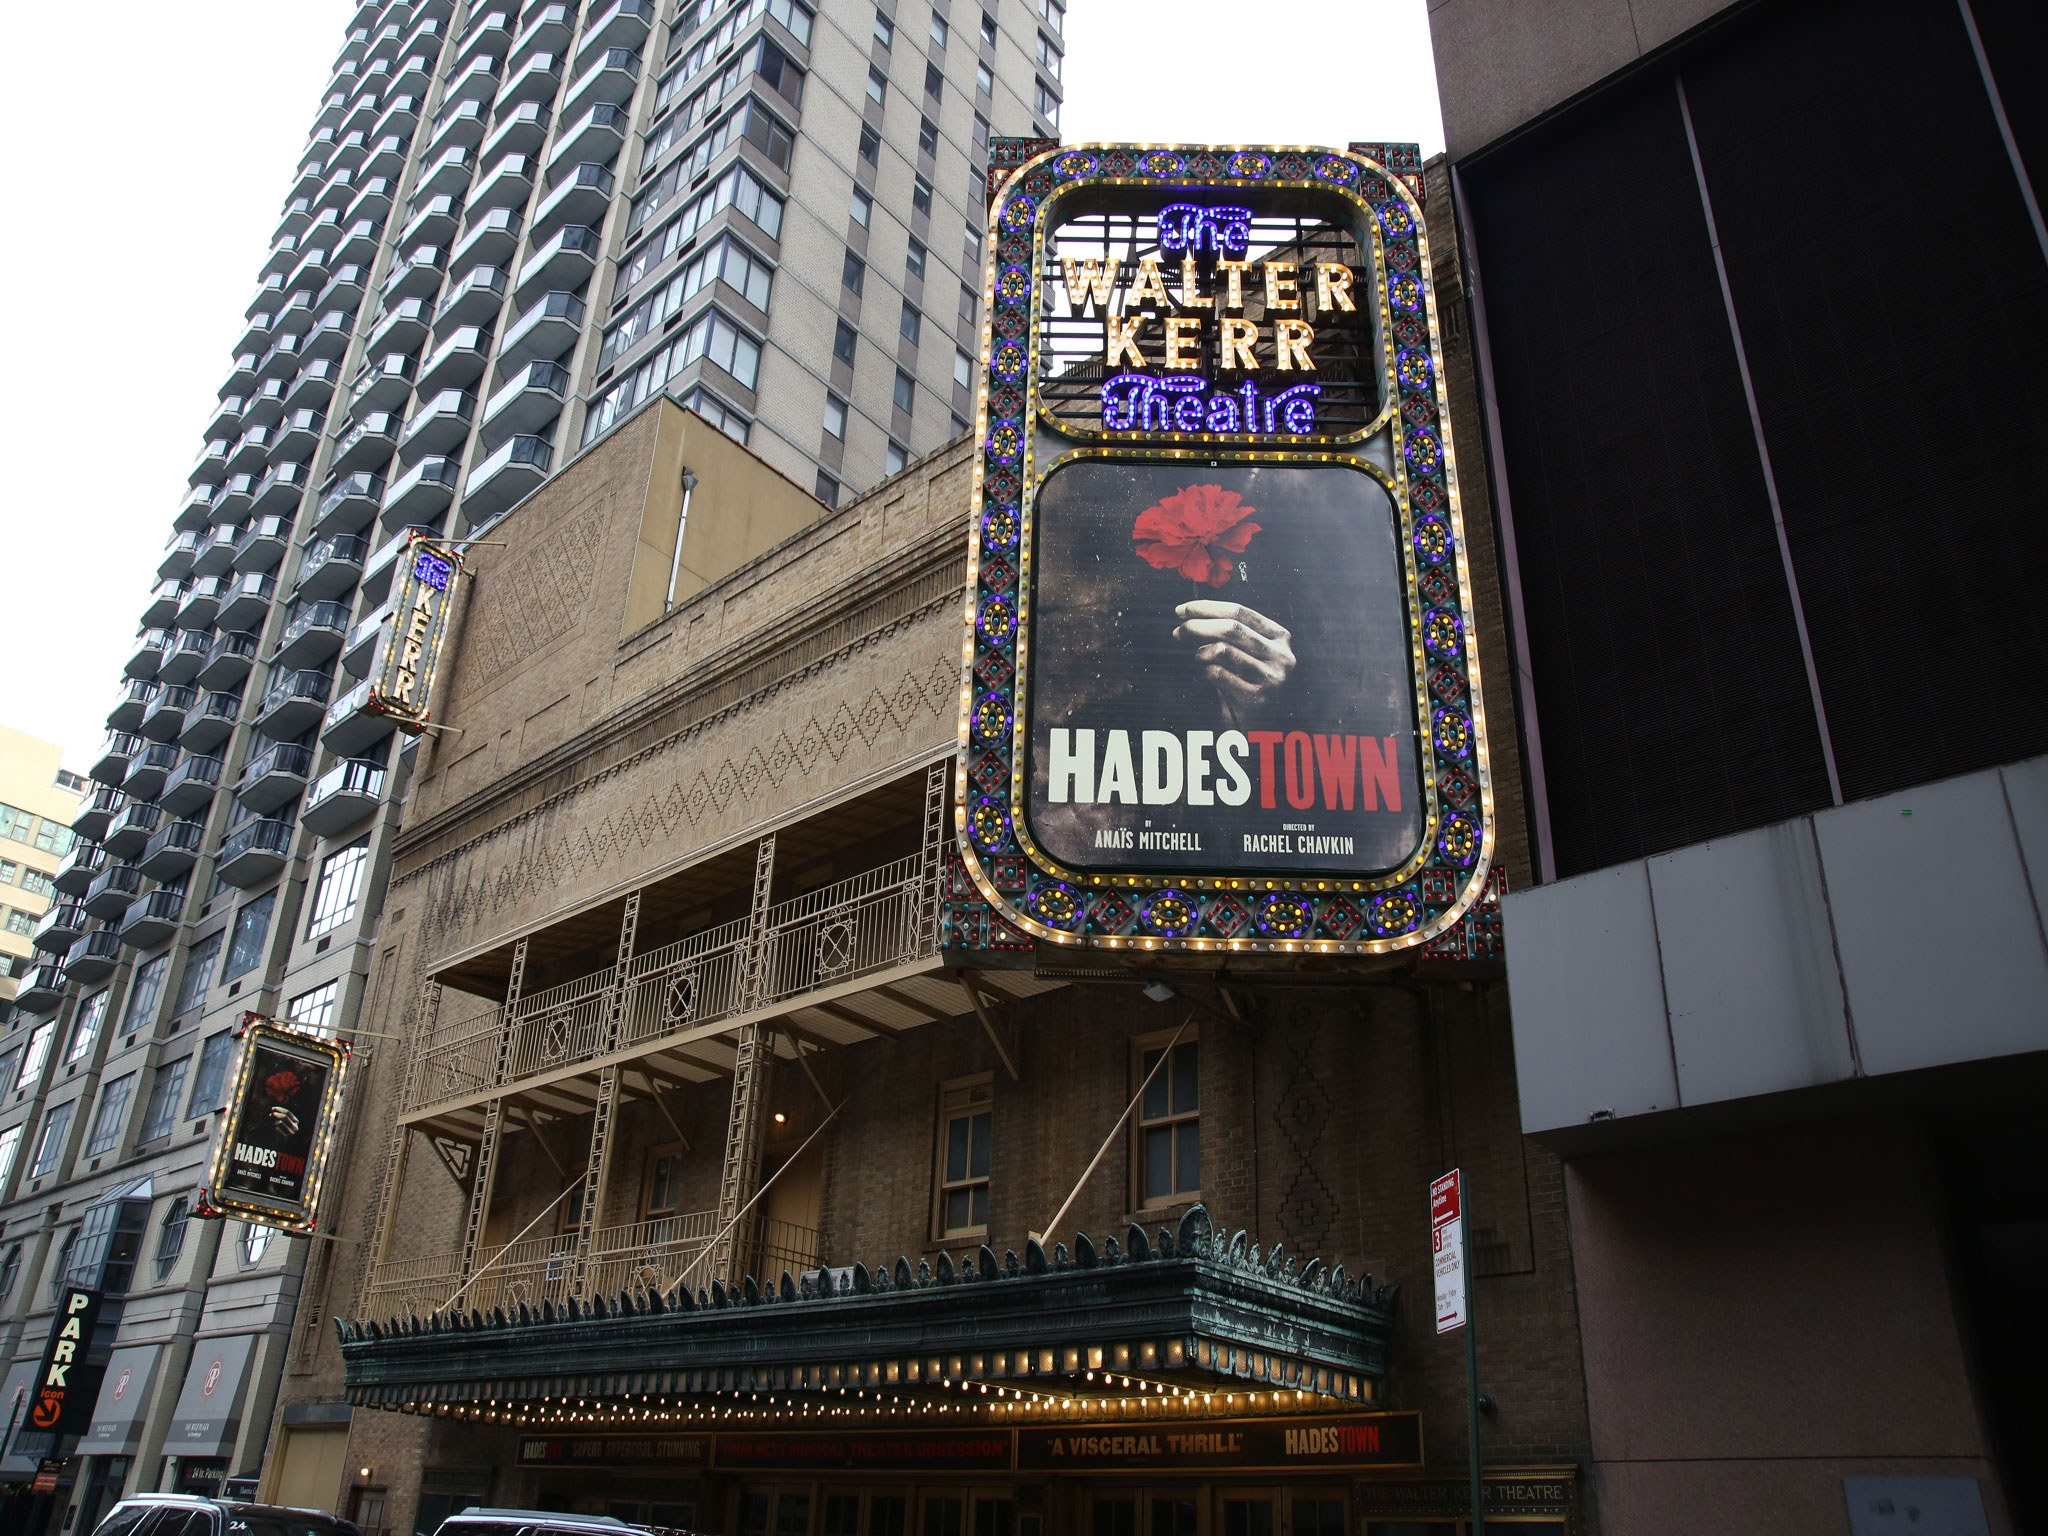 Hadestown Marquee at the Walter Kerr Theatre